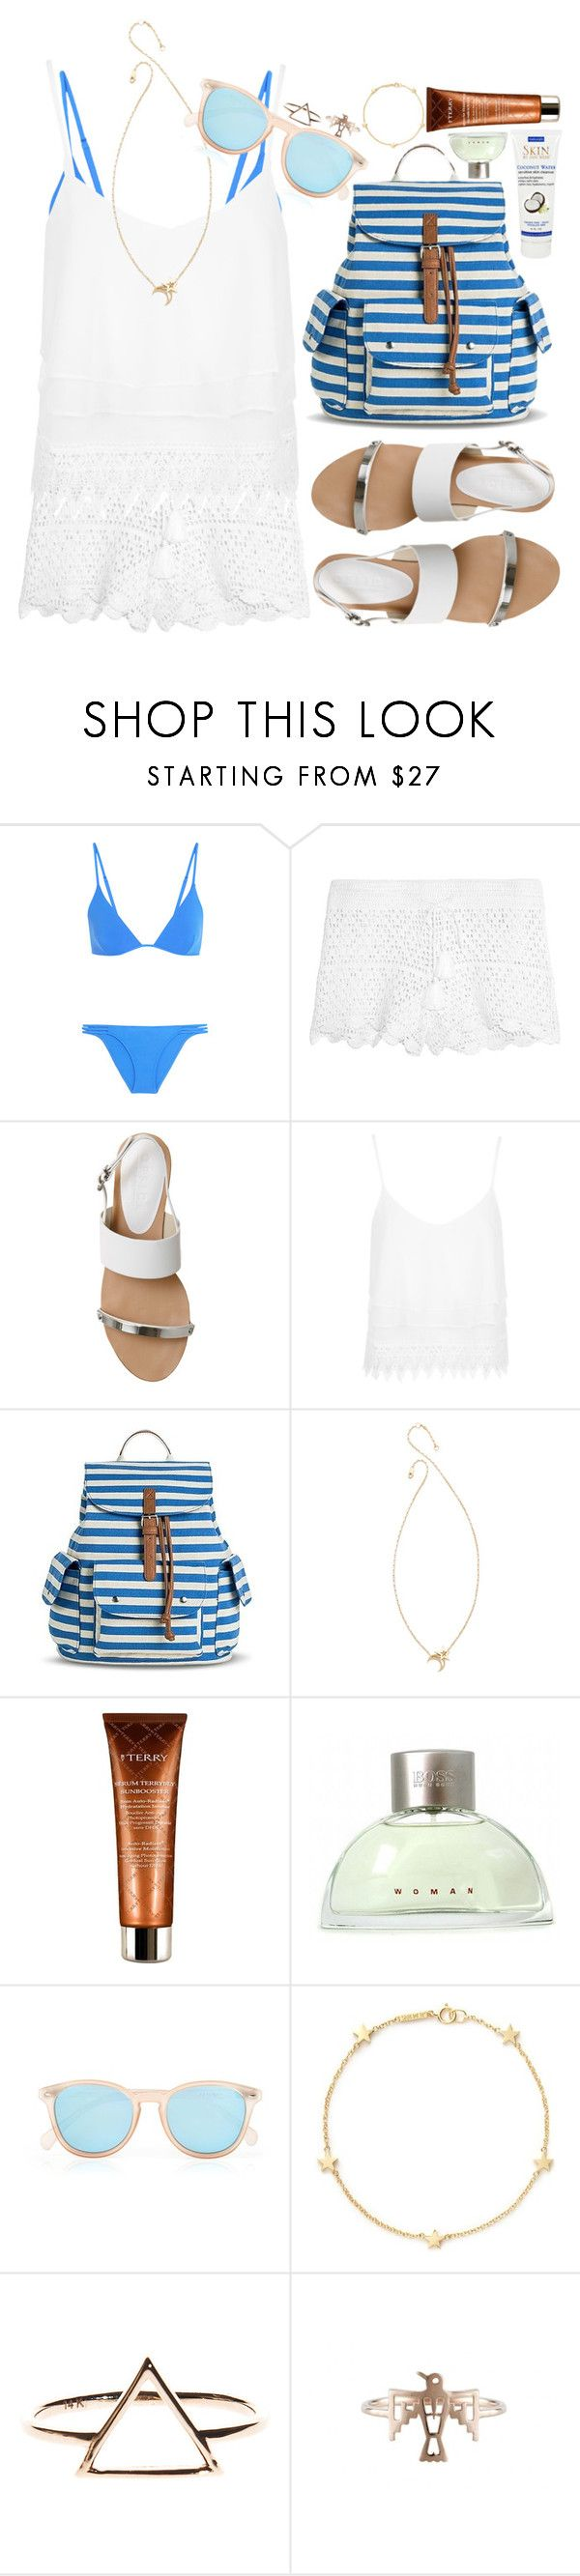 """""""Feel the summer"""" by noa5353 ❤ liked on Polyvore featuring Melissa Odabash, Tory Burch, Office, Topshop, Bueno, Jennifer Zeuner, By Terry, HUGO, Le Specs and Jennifer Meyer Jewelry"""